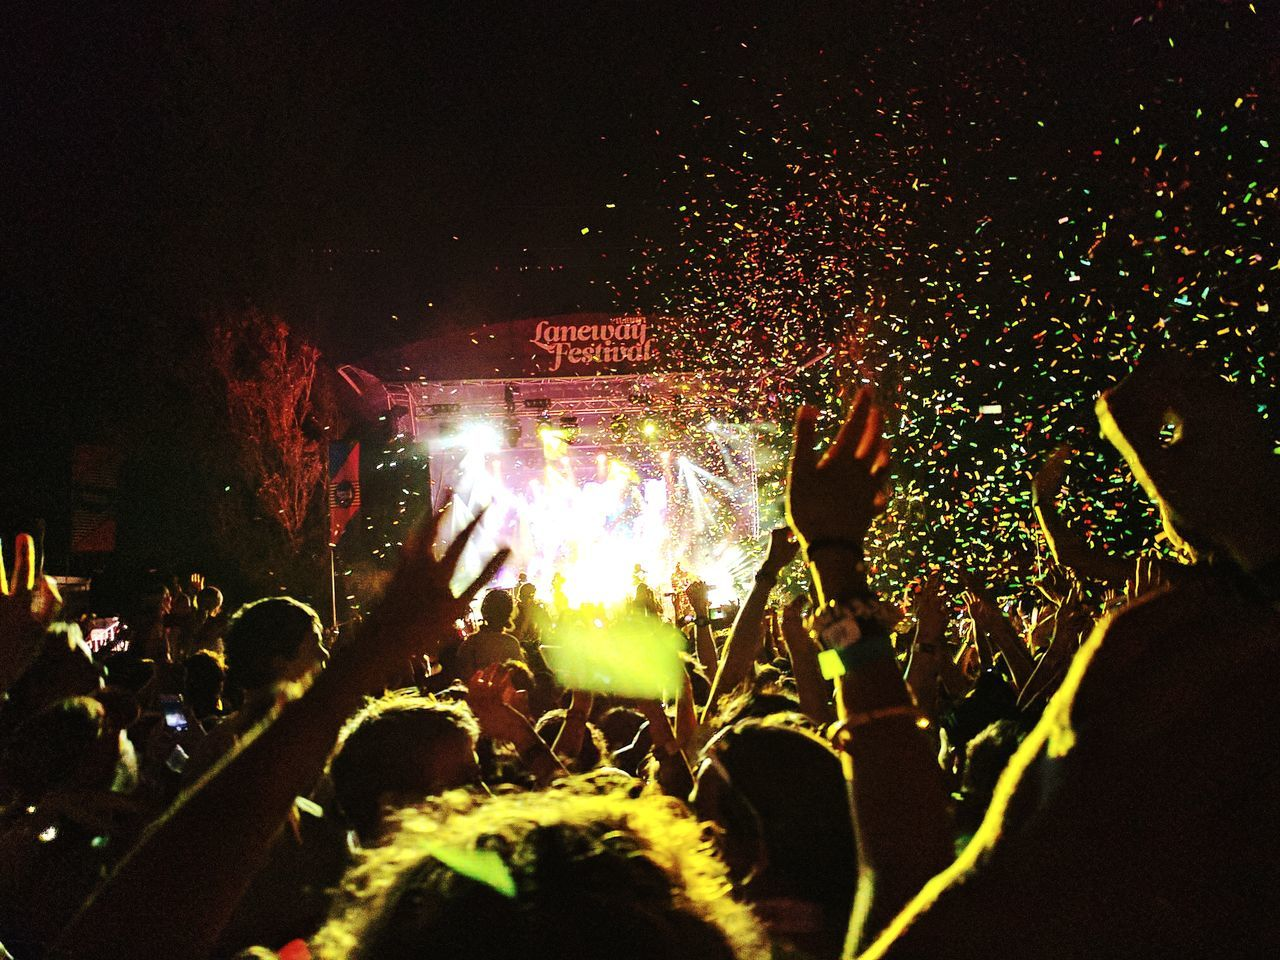 Brazil Carnival Crowds Crowd Large Group Of People Night Audience Music Popular Music Concert Illuminated Fun Nightlife Carefree Confetti Enjoyment Arts Culture And Entertainment Performance Men Excitement Stage Light People Stage - Performance Space Outdoors